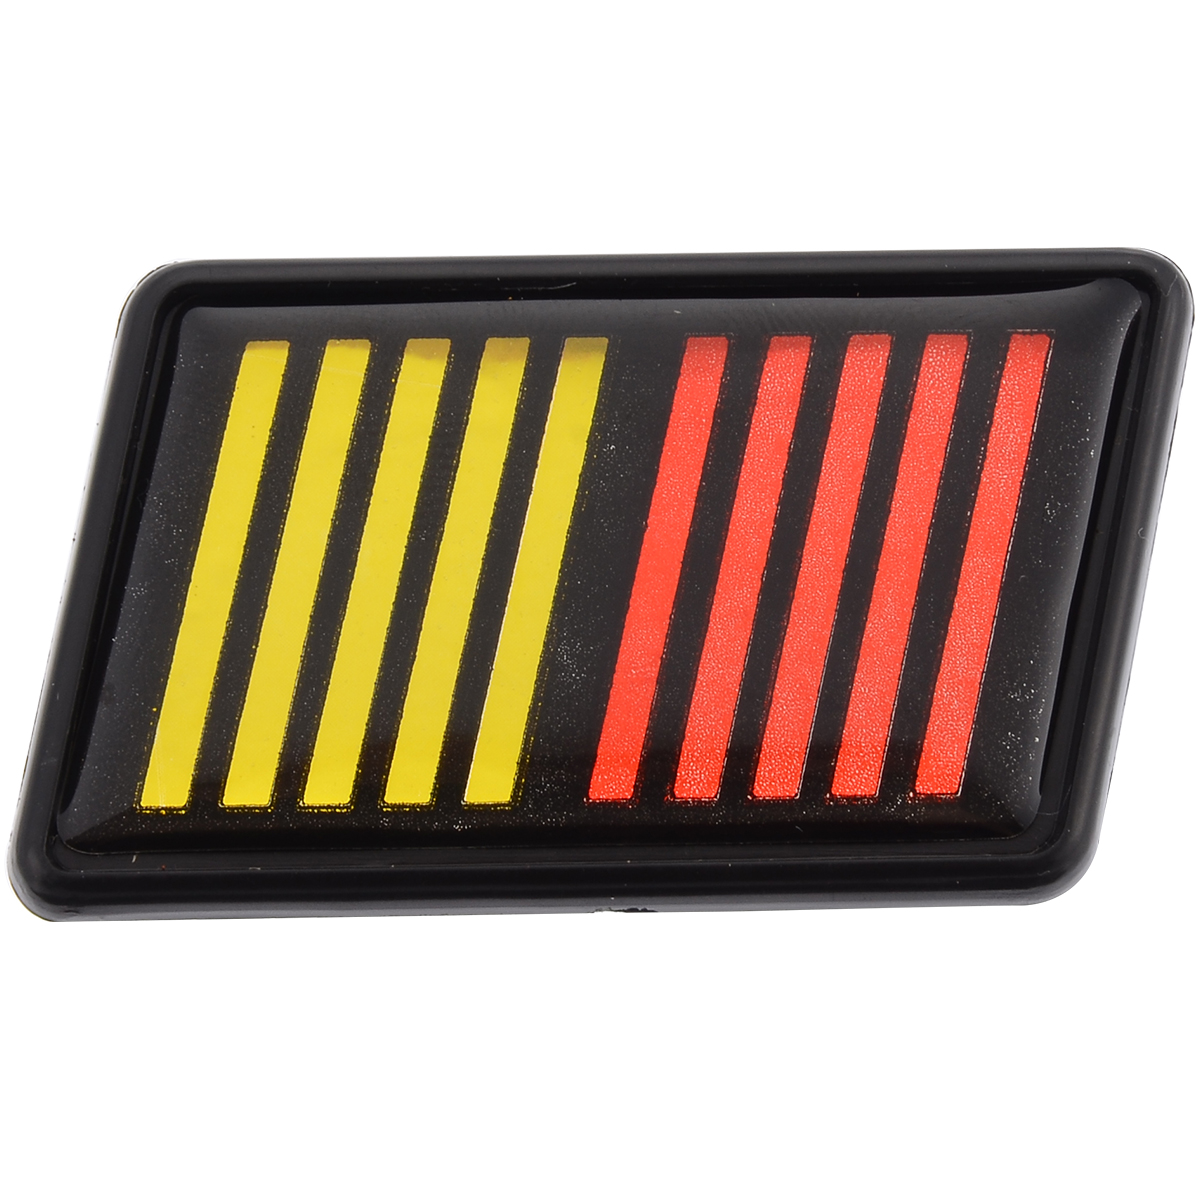 New Arrival <font><b>55</b></font> x 35mm Red Yellow Black Ralliart Stripe Grille Emblem Badge Car Styling Emblem For Mitsubishi image